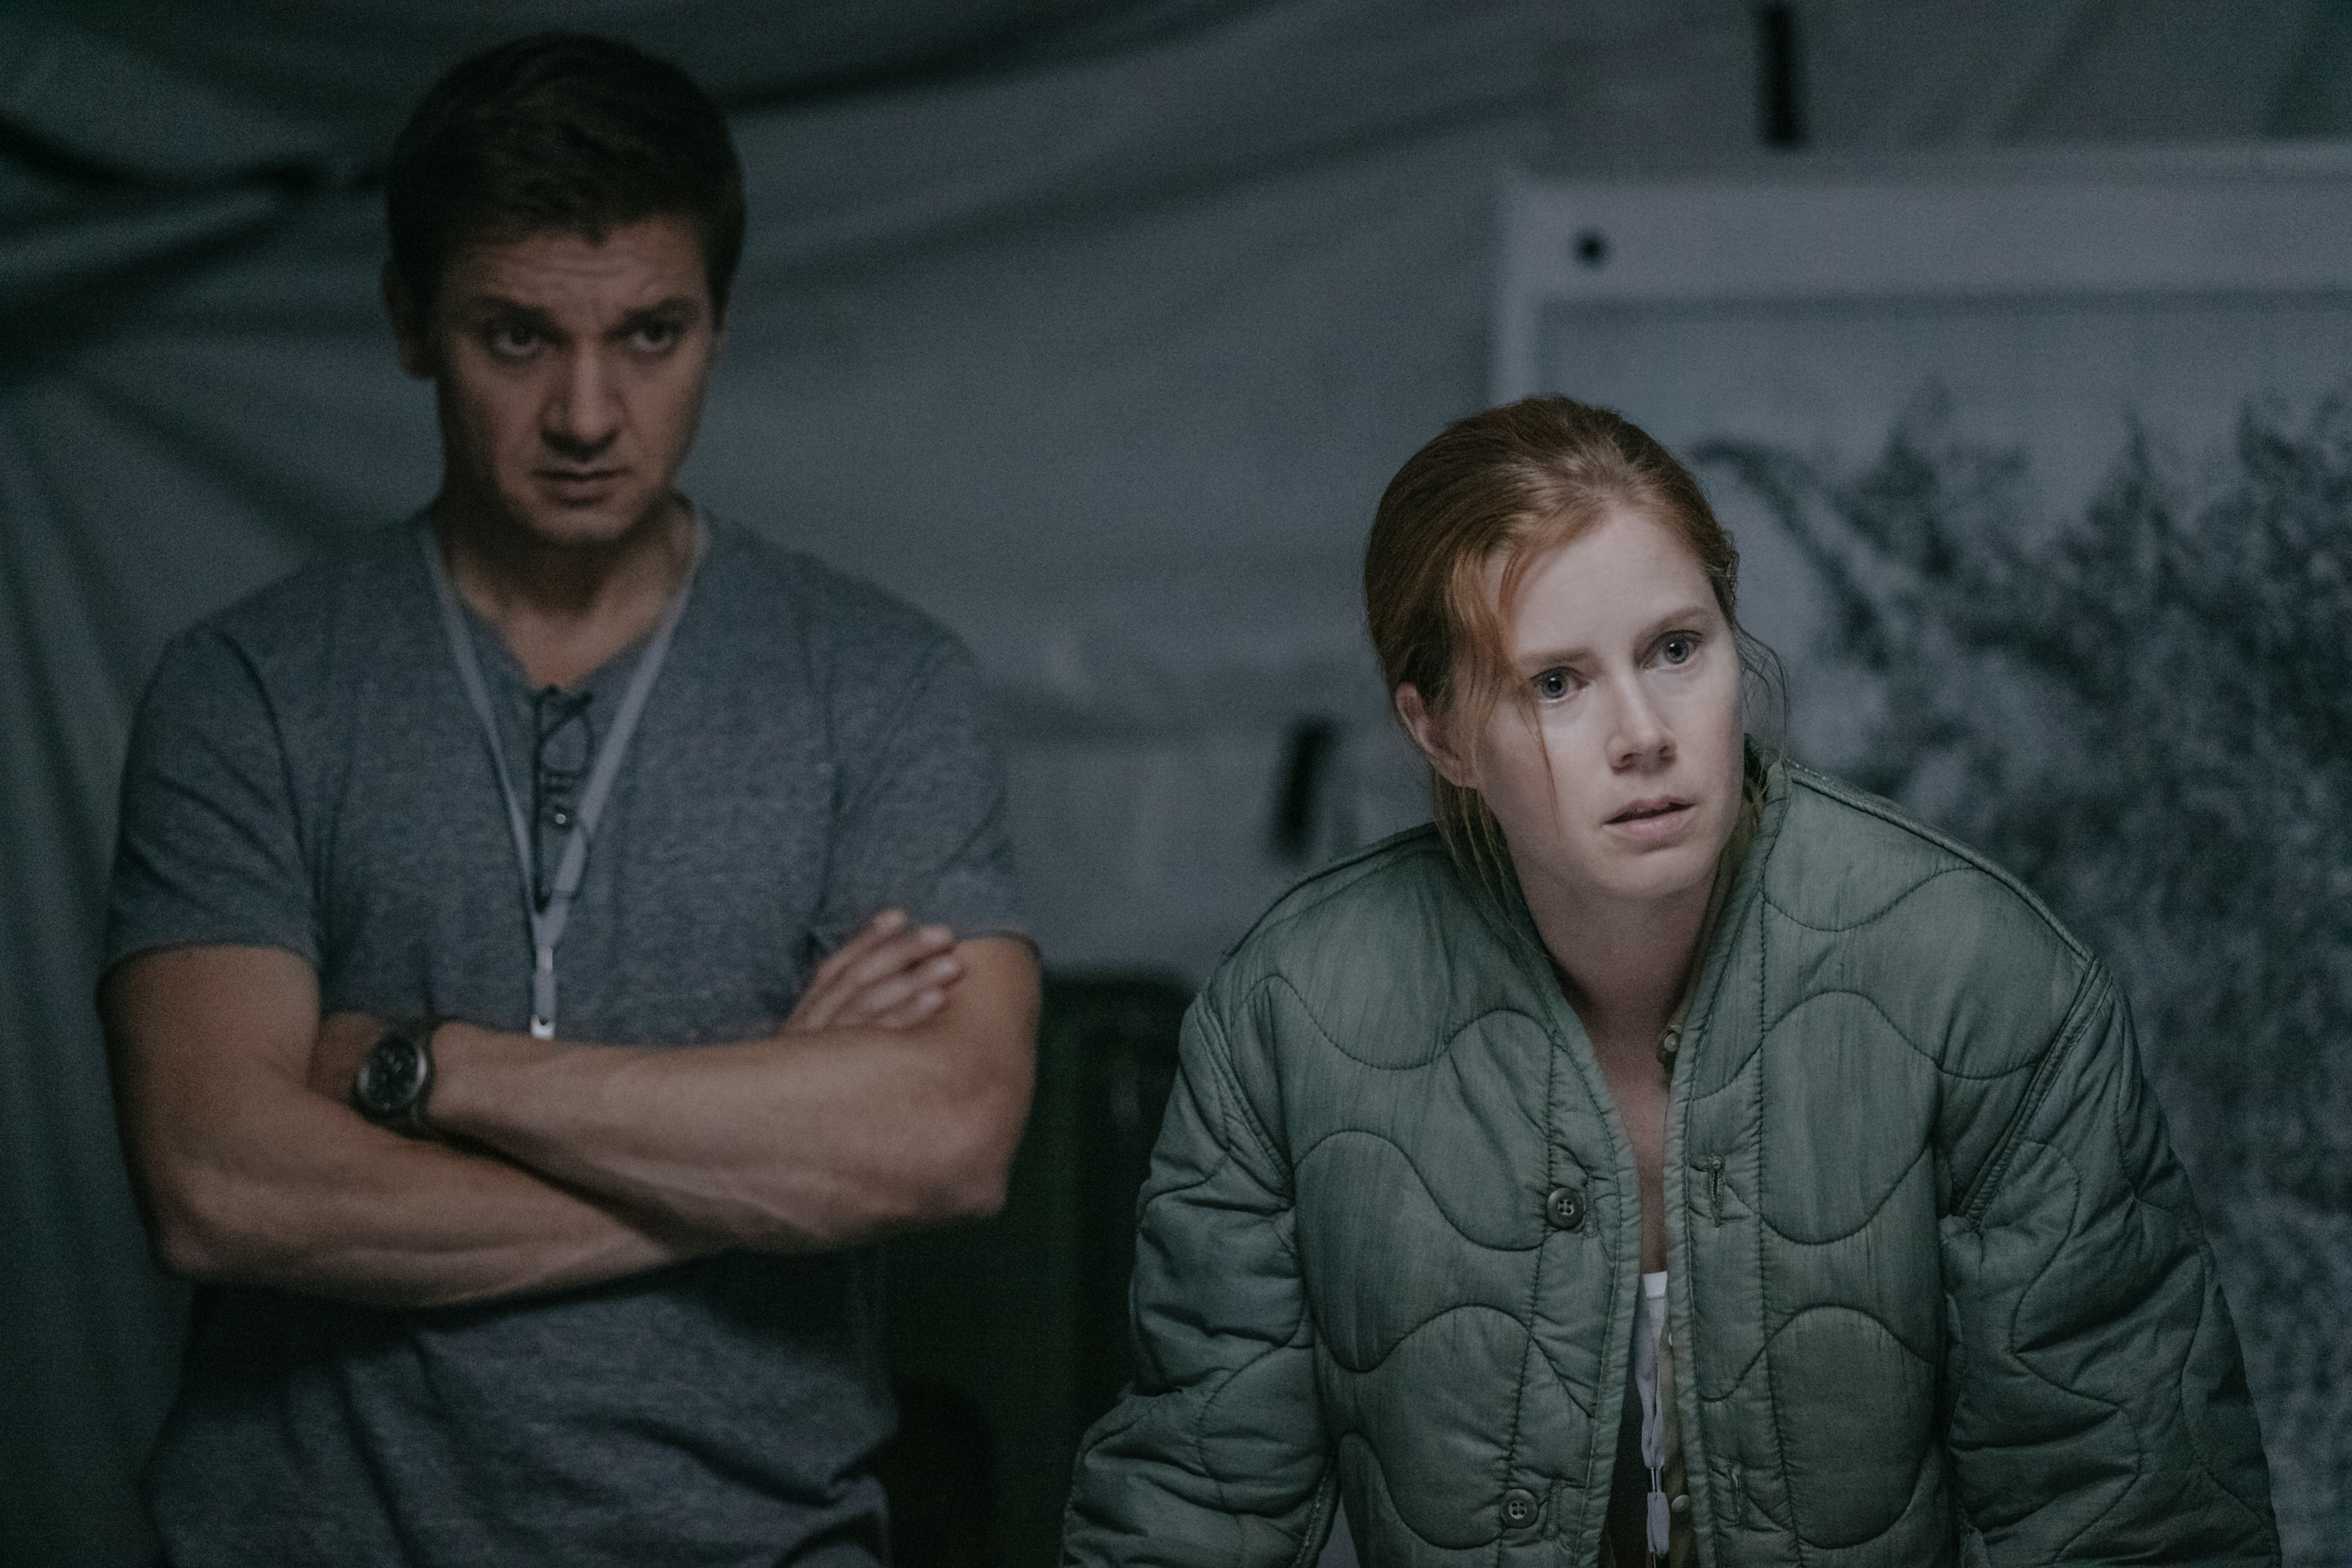 amy adams communicates aliens in arrival front row features l r jeremy renner as ian donnelly and amy adams as louise banks in arrival